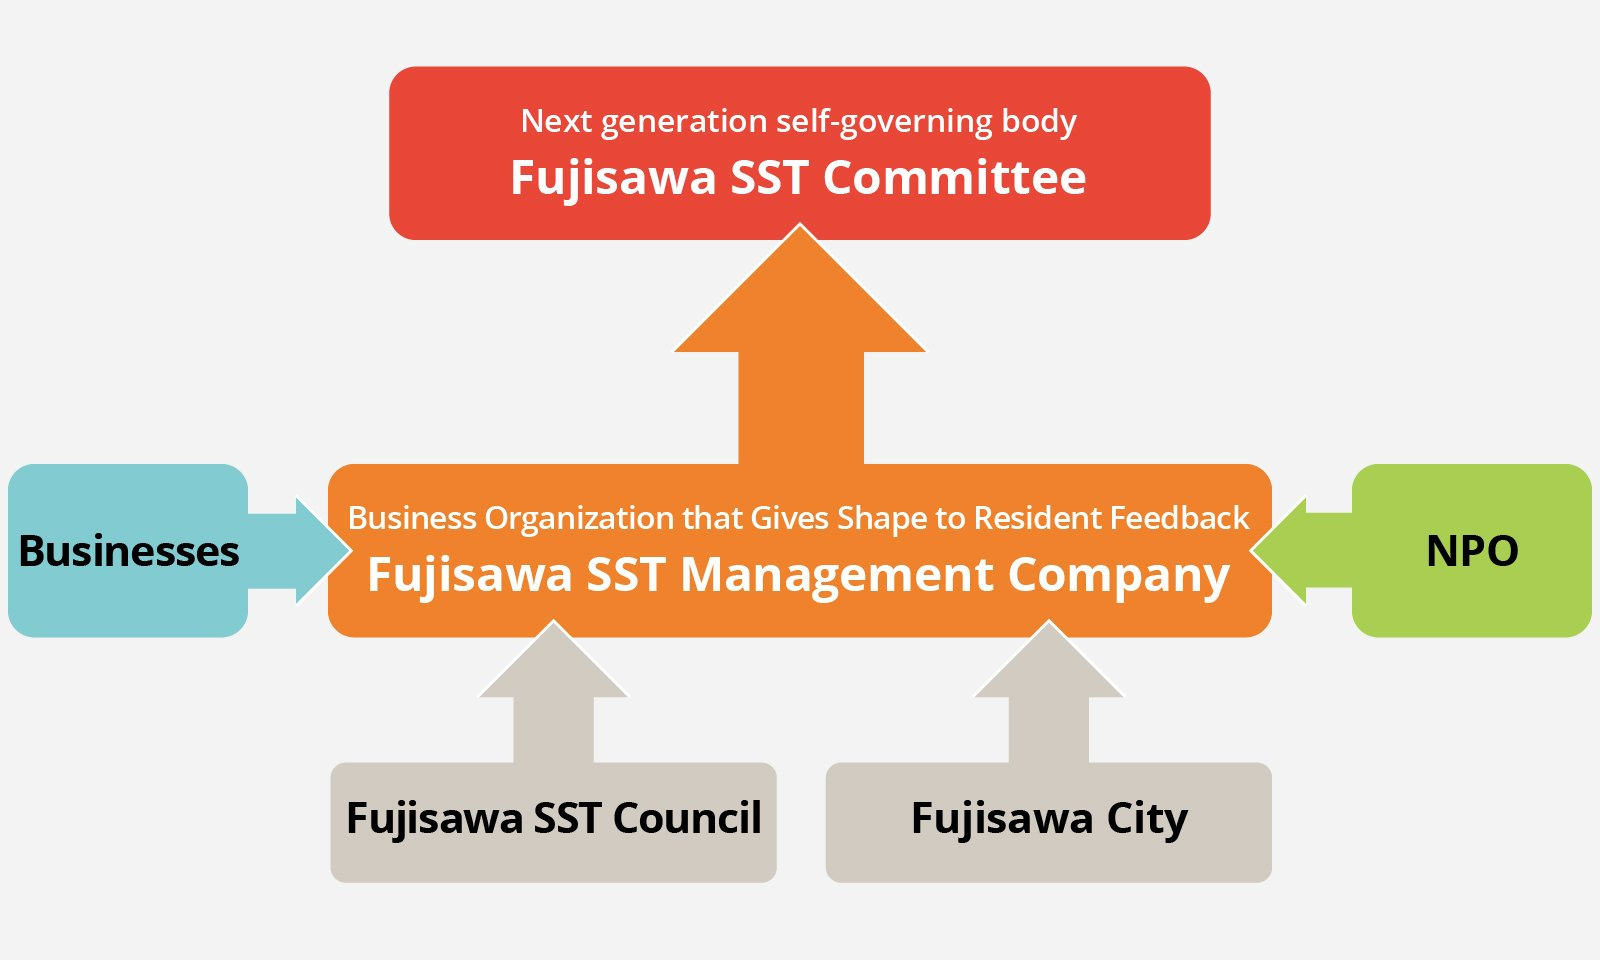 This structure enables FSST to develop sustainably. And the Fujisawa SST Management Company serves as the hub.